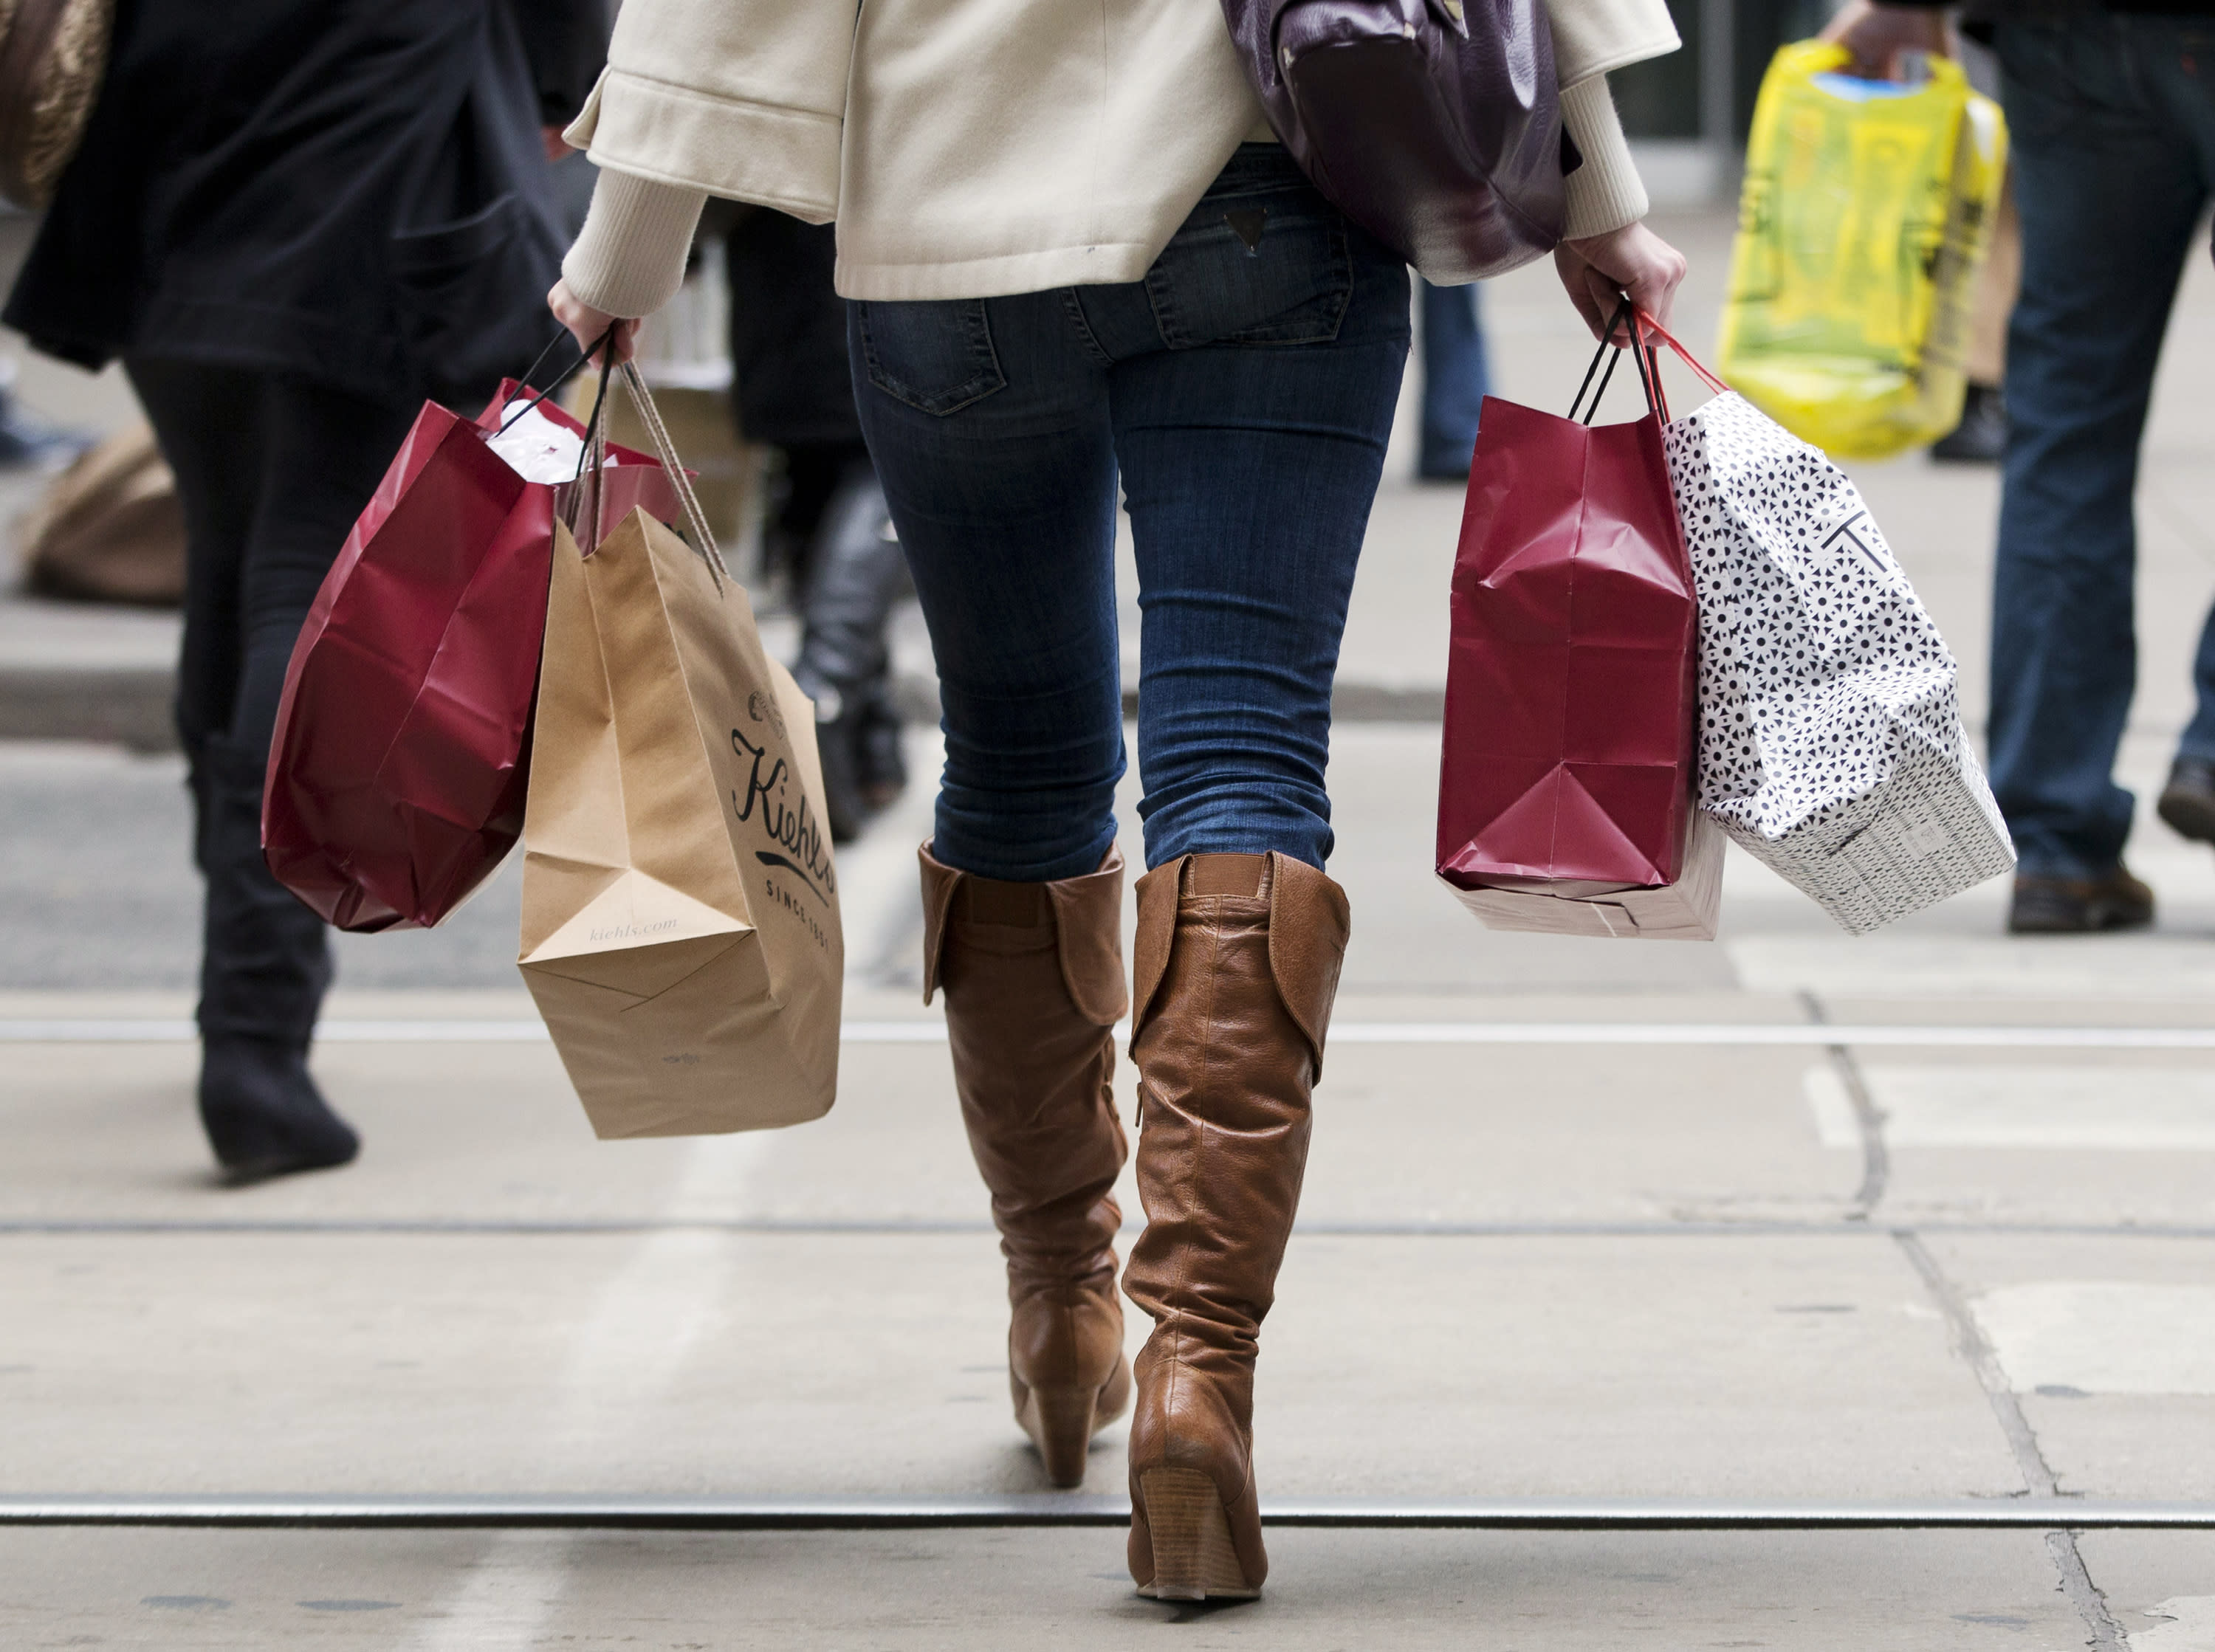 Canadians to spend more during the holidays, despite recession and debt concerns